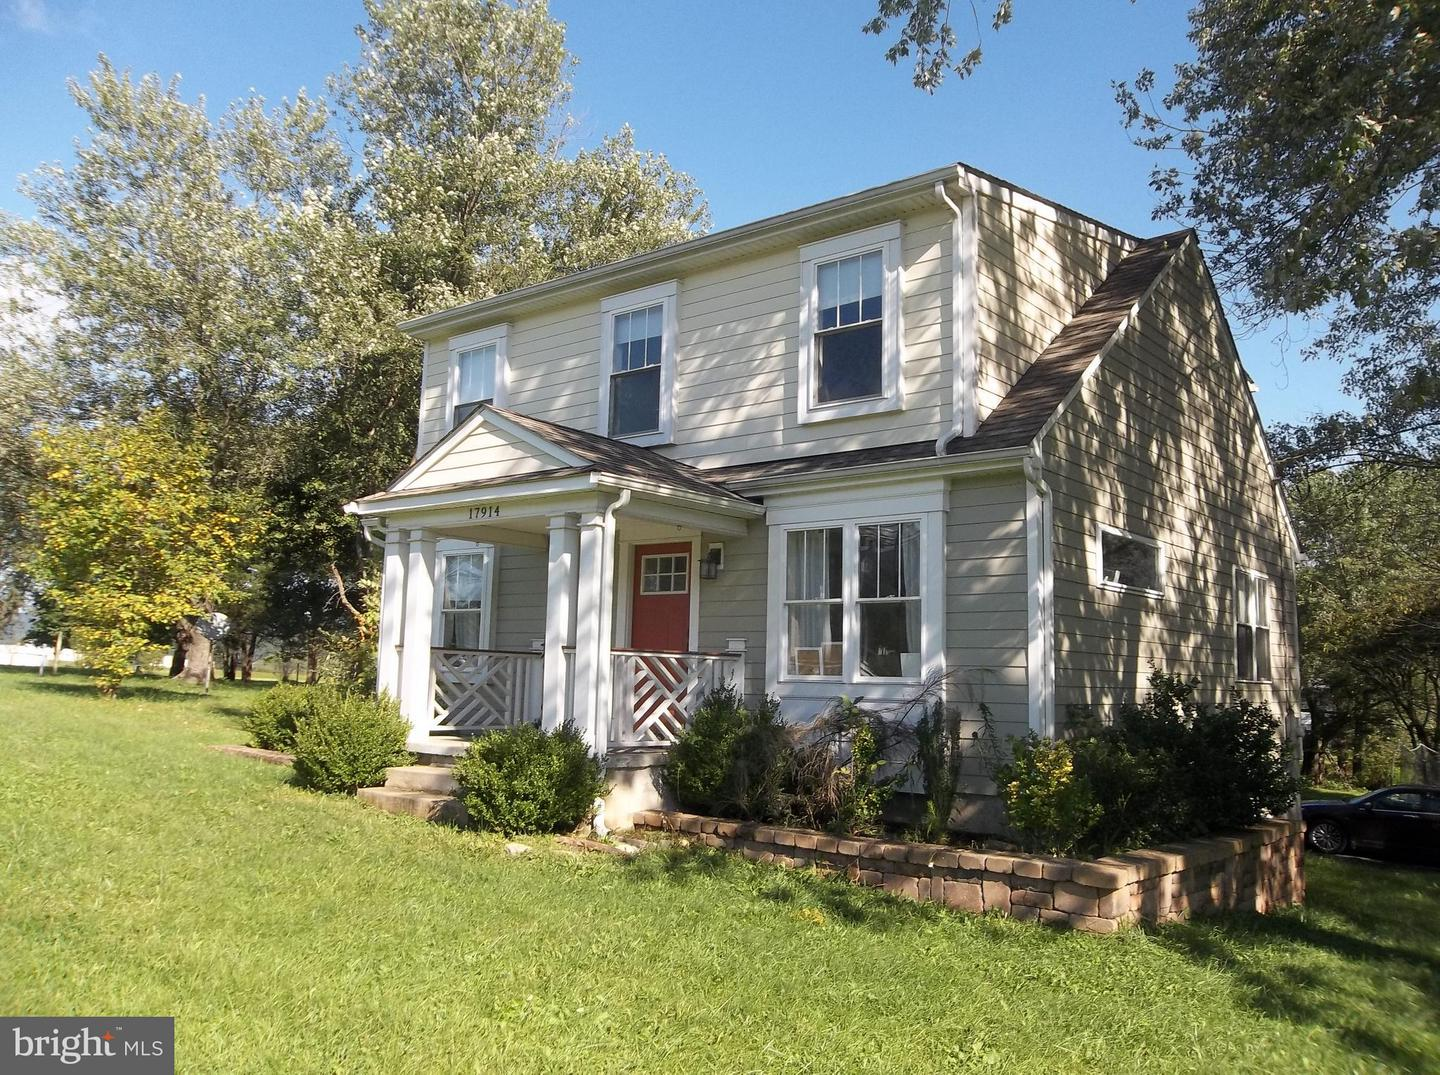 Single Family for Sale at 17914 Mcmullen Hwy SW Rawlings, Maryland 21557 United States